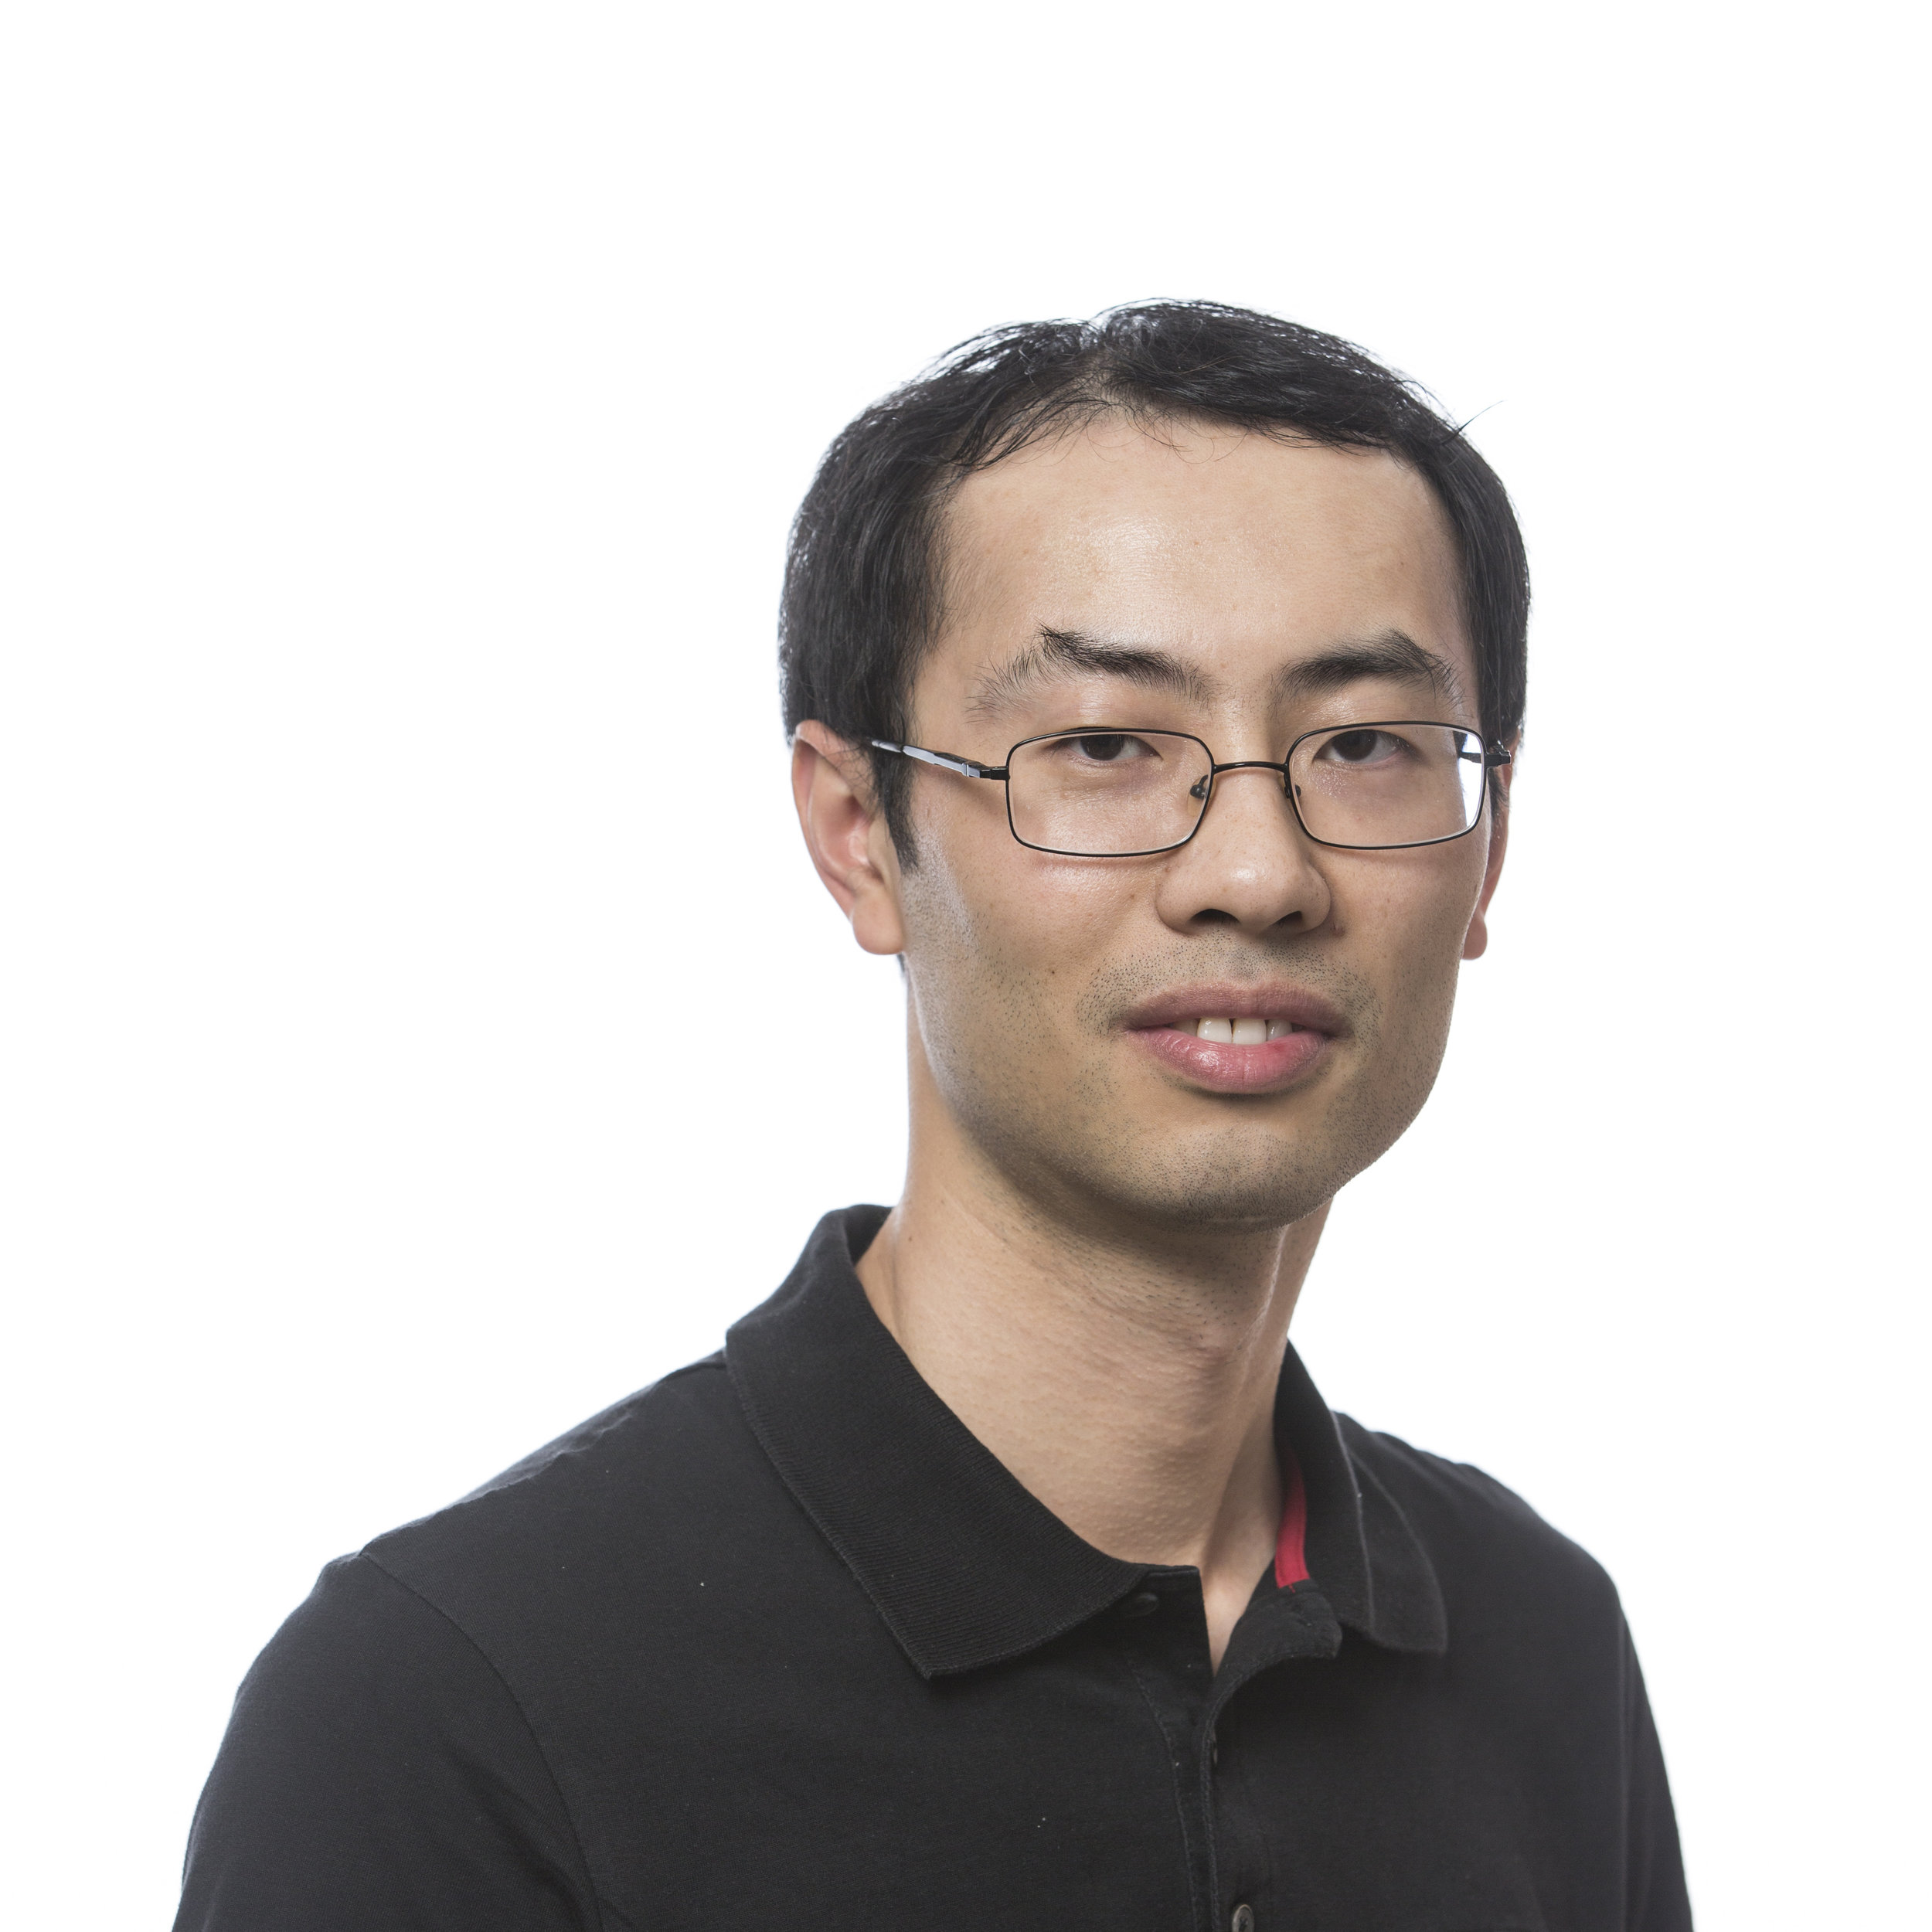 Dr. Ren-Chao Chen - Epigenetic control of reward systems and drug addiction, cell heterogeneity of the braincontact